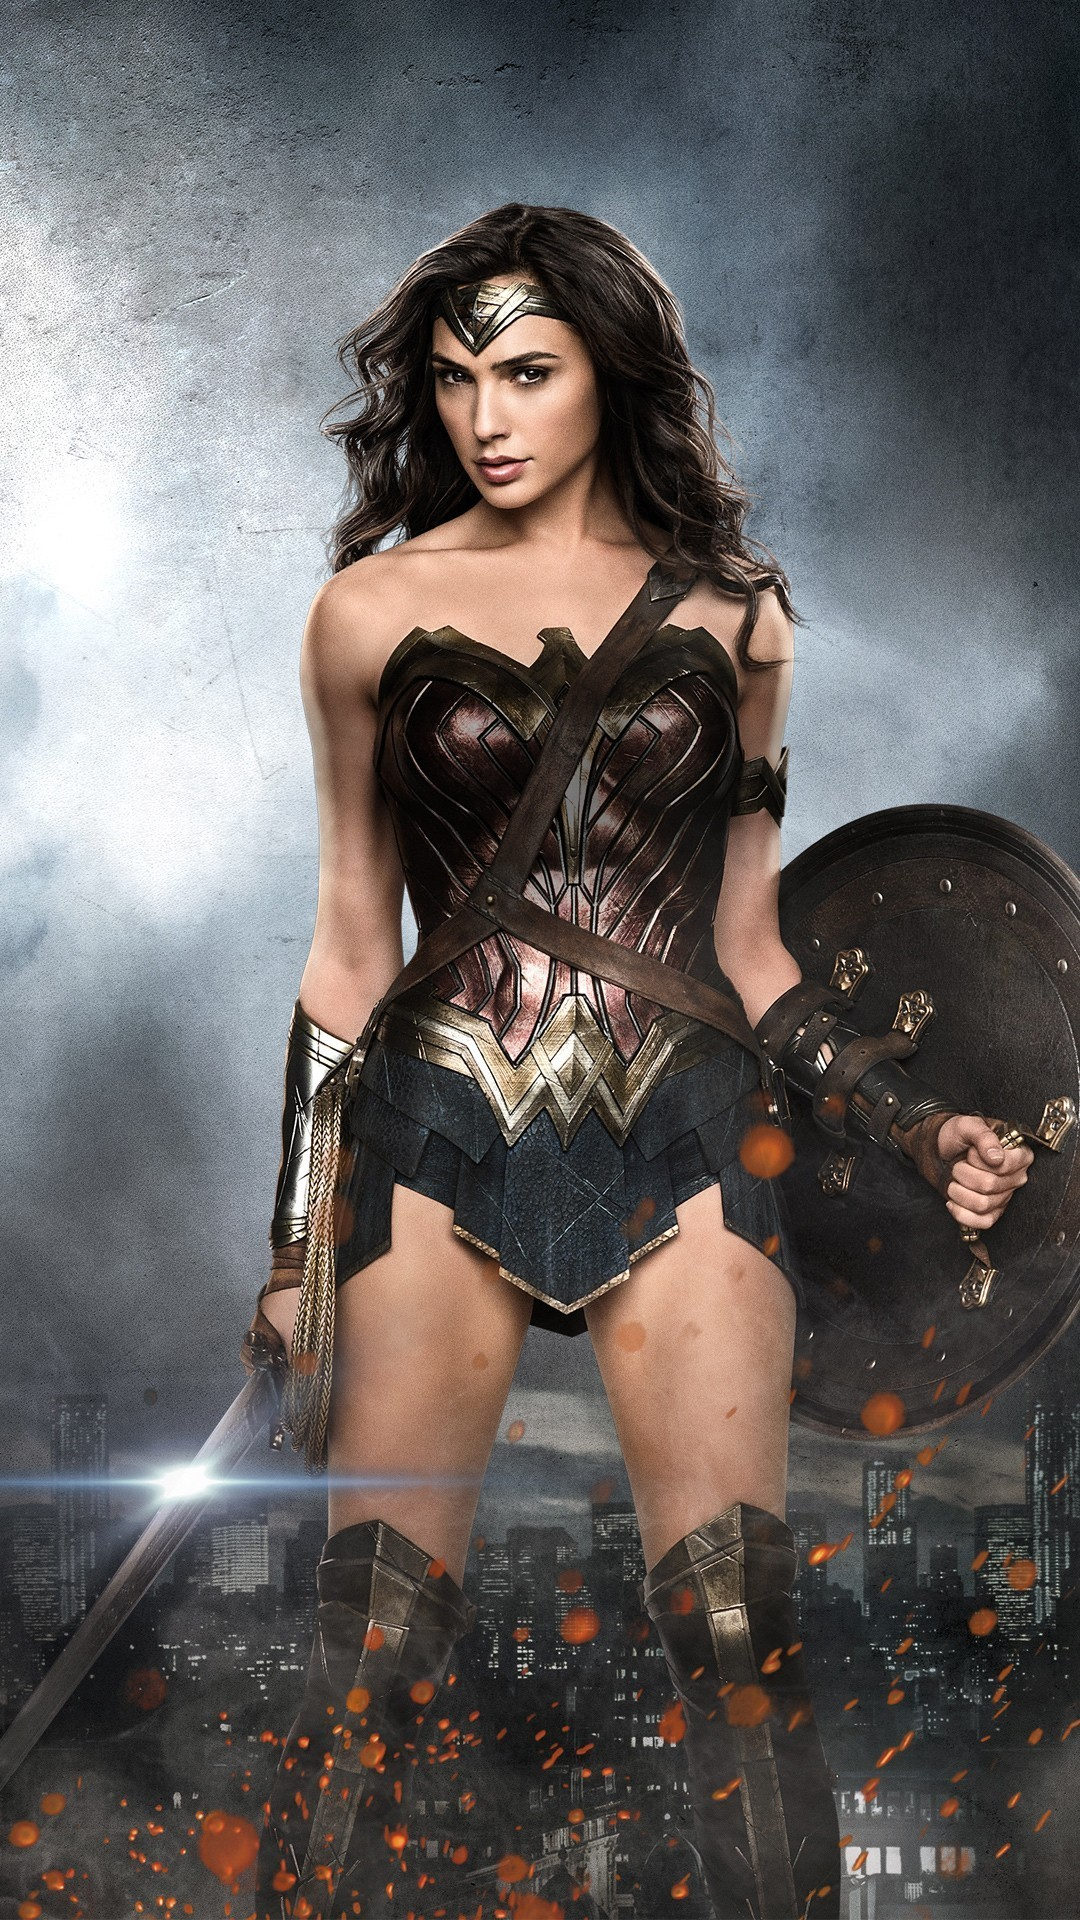 1080x1920 Wonder Woman Gal Gadot iPhone Wallpaper resolution